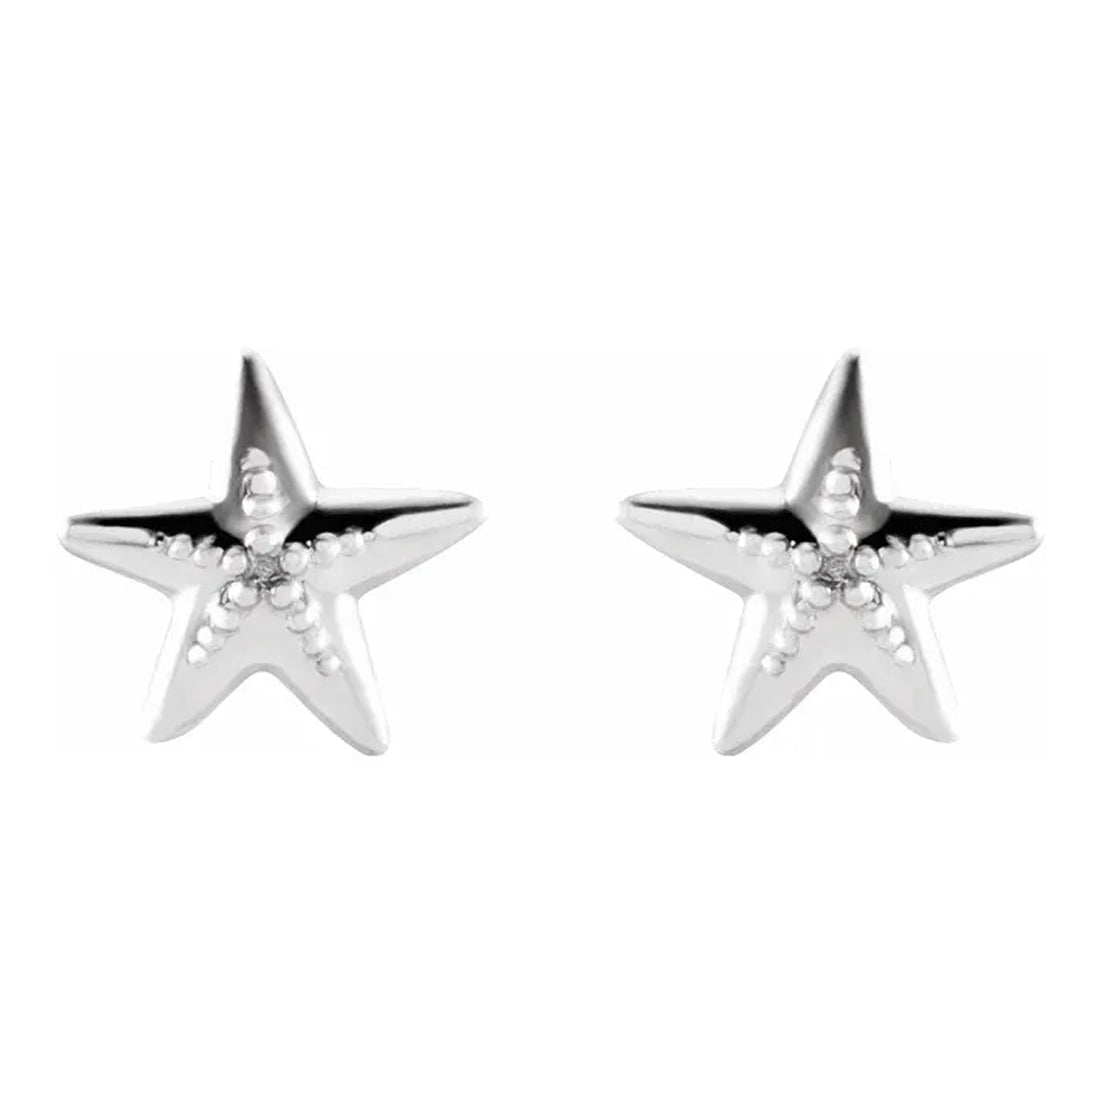 Stud Earrings - Starfish Earrings In 925 Sterling Silver